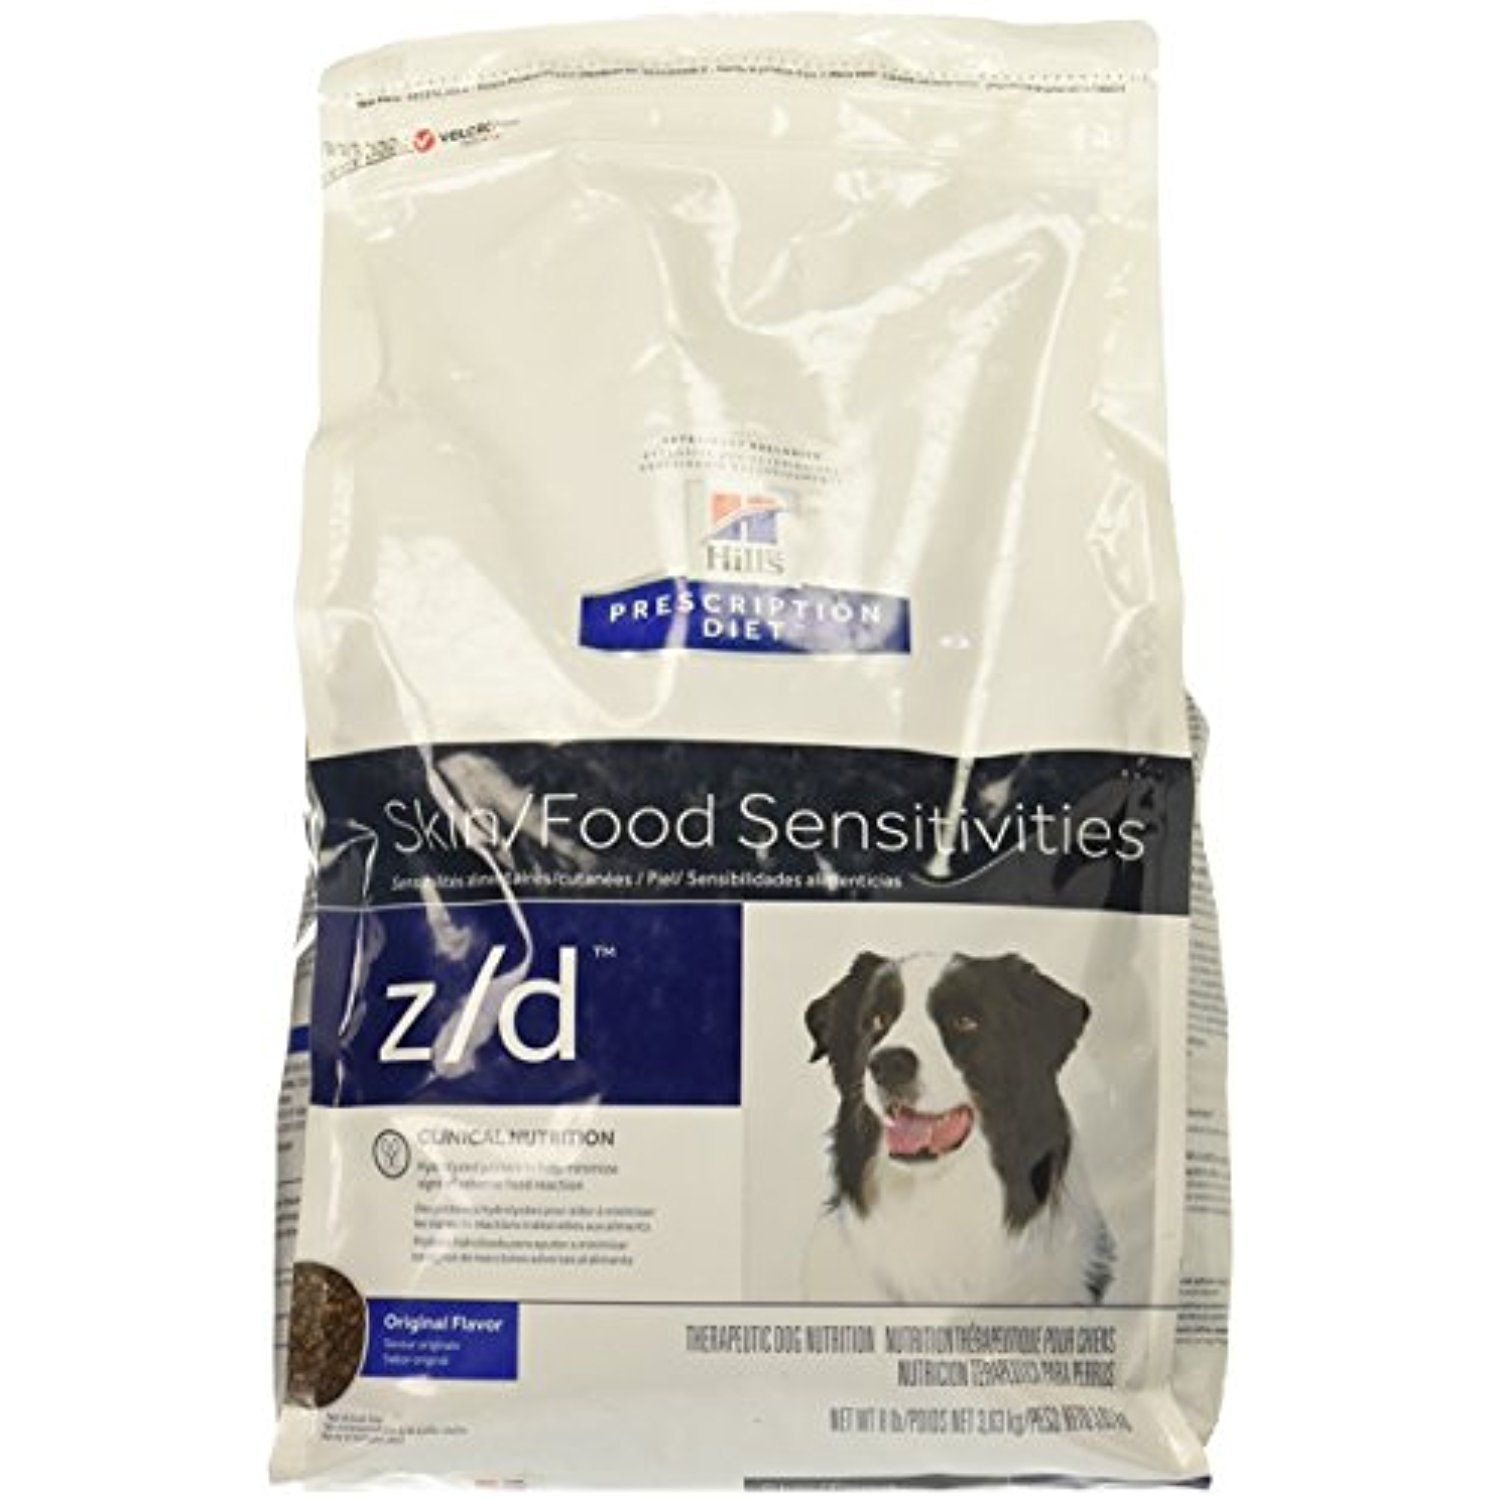 Hills Z D Ultra Allergen Free Dog Food 8 Lb You Could Get More Details By Clicking On The Image This Animal Nutrition Hills Prescription Diet Free Dog Food